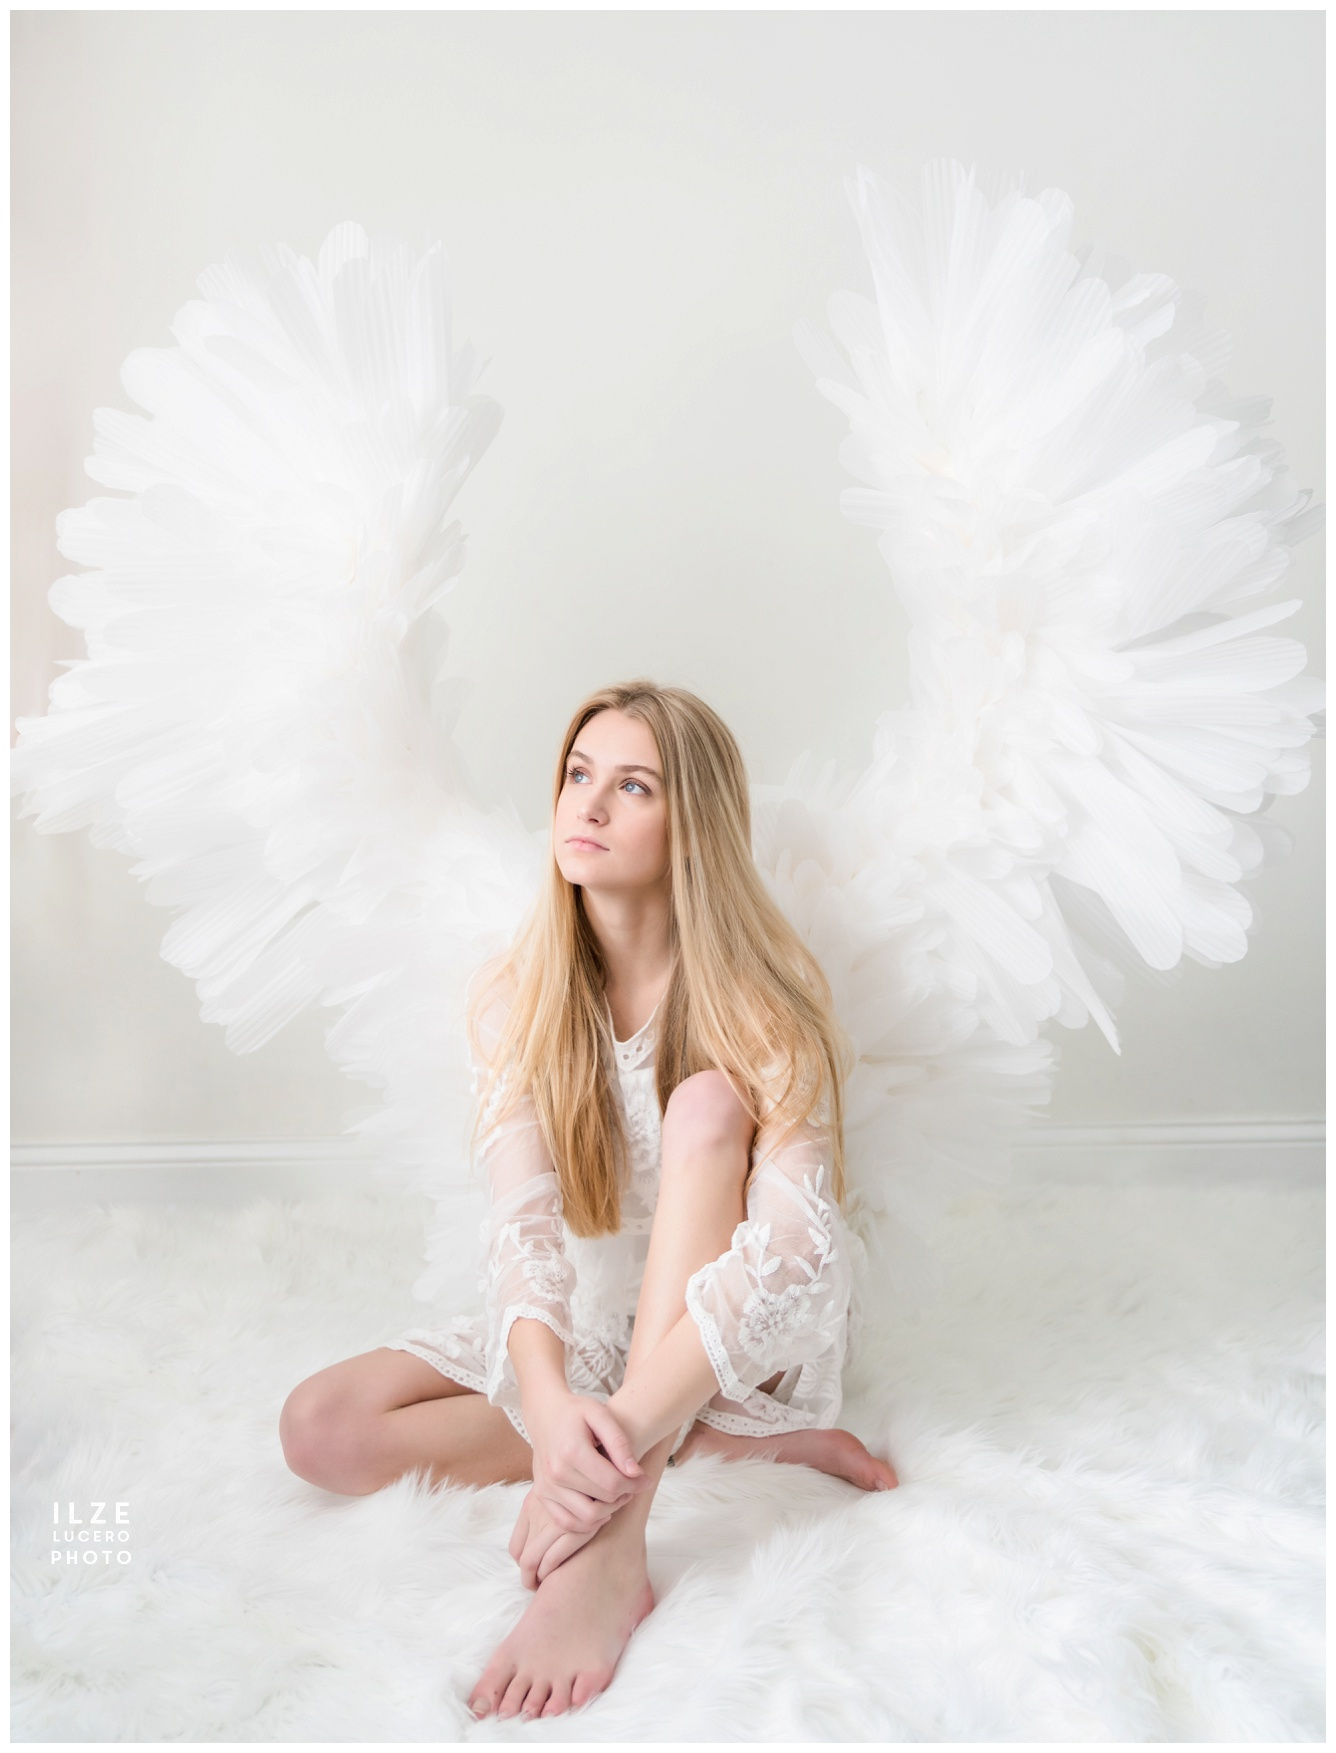 DIY Angel Wings Photo Prop from foam